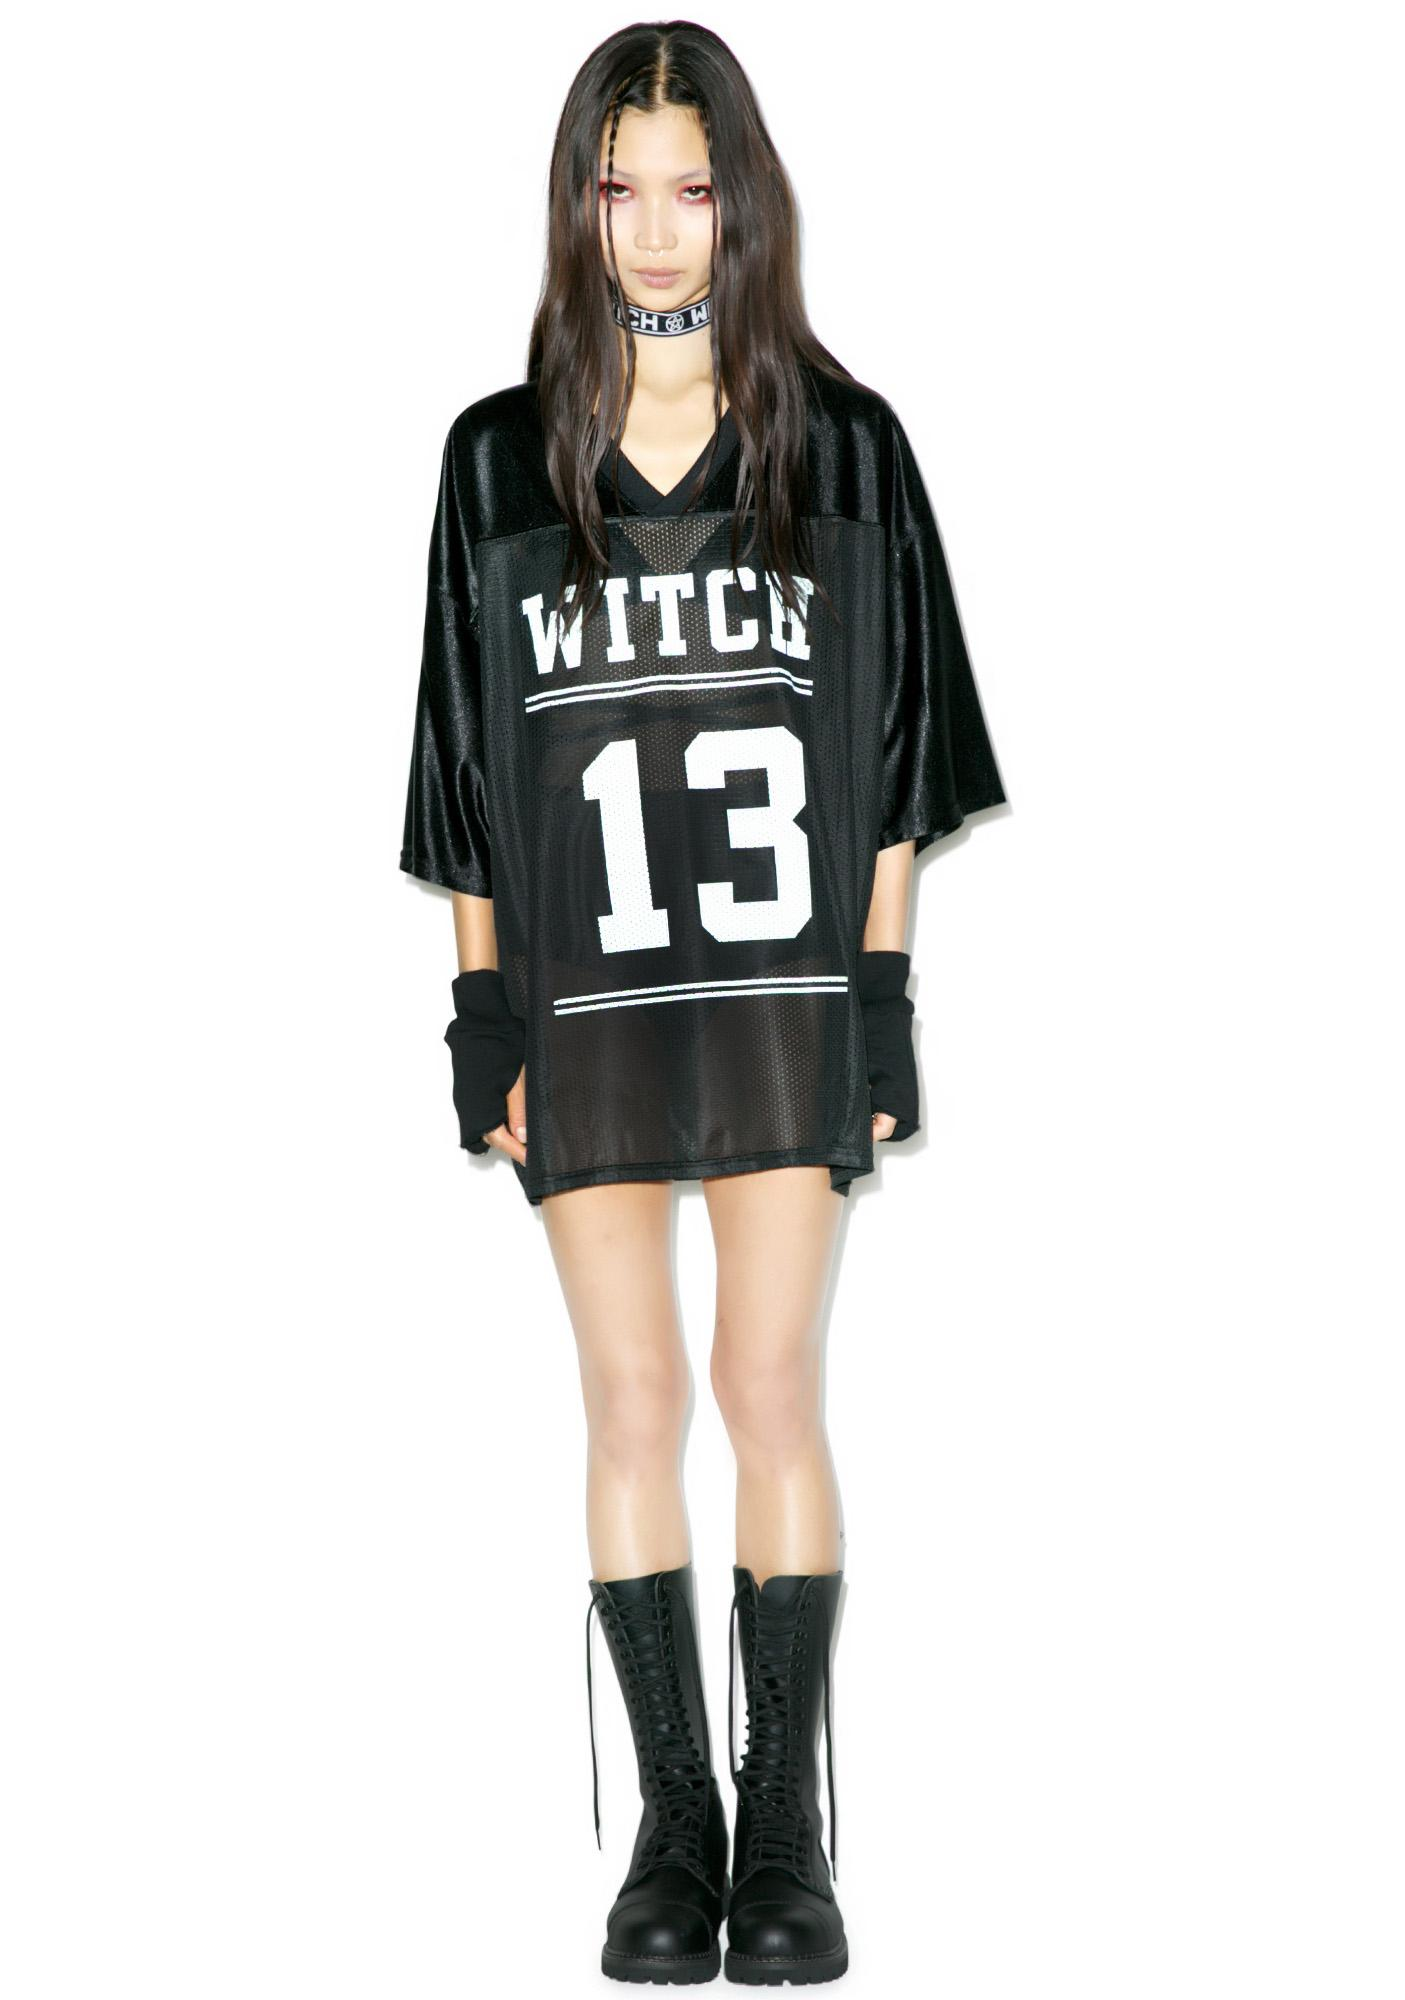 Witch Worldwide Oversized Witch Jersey